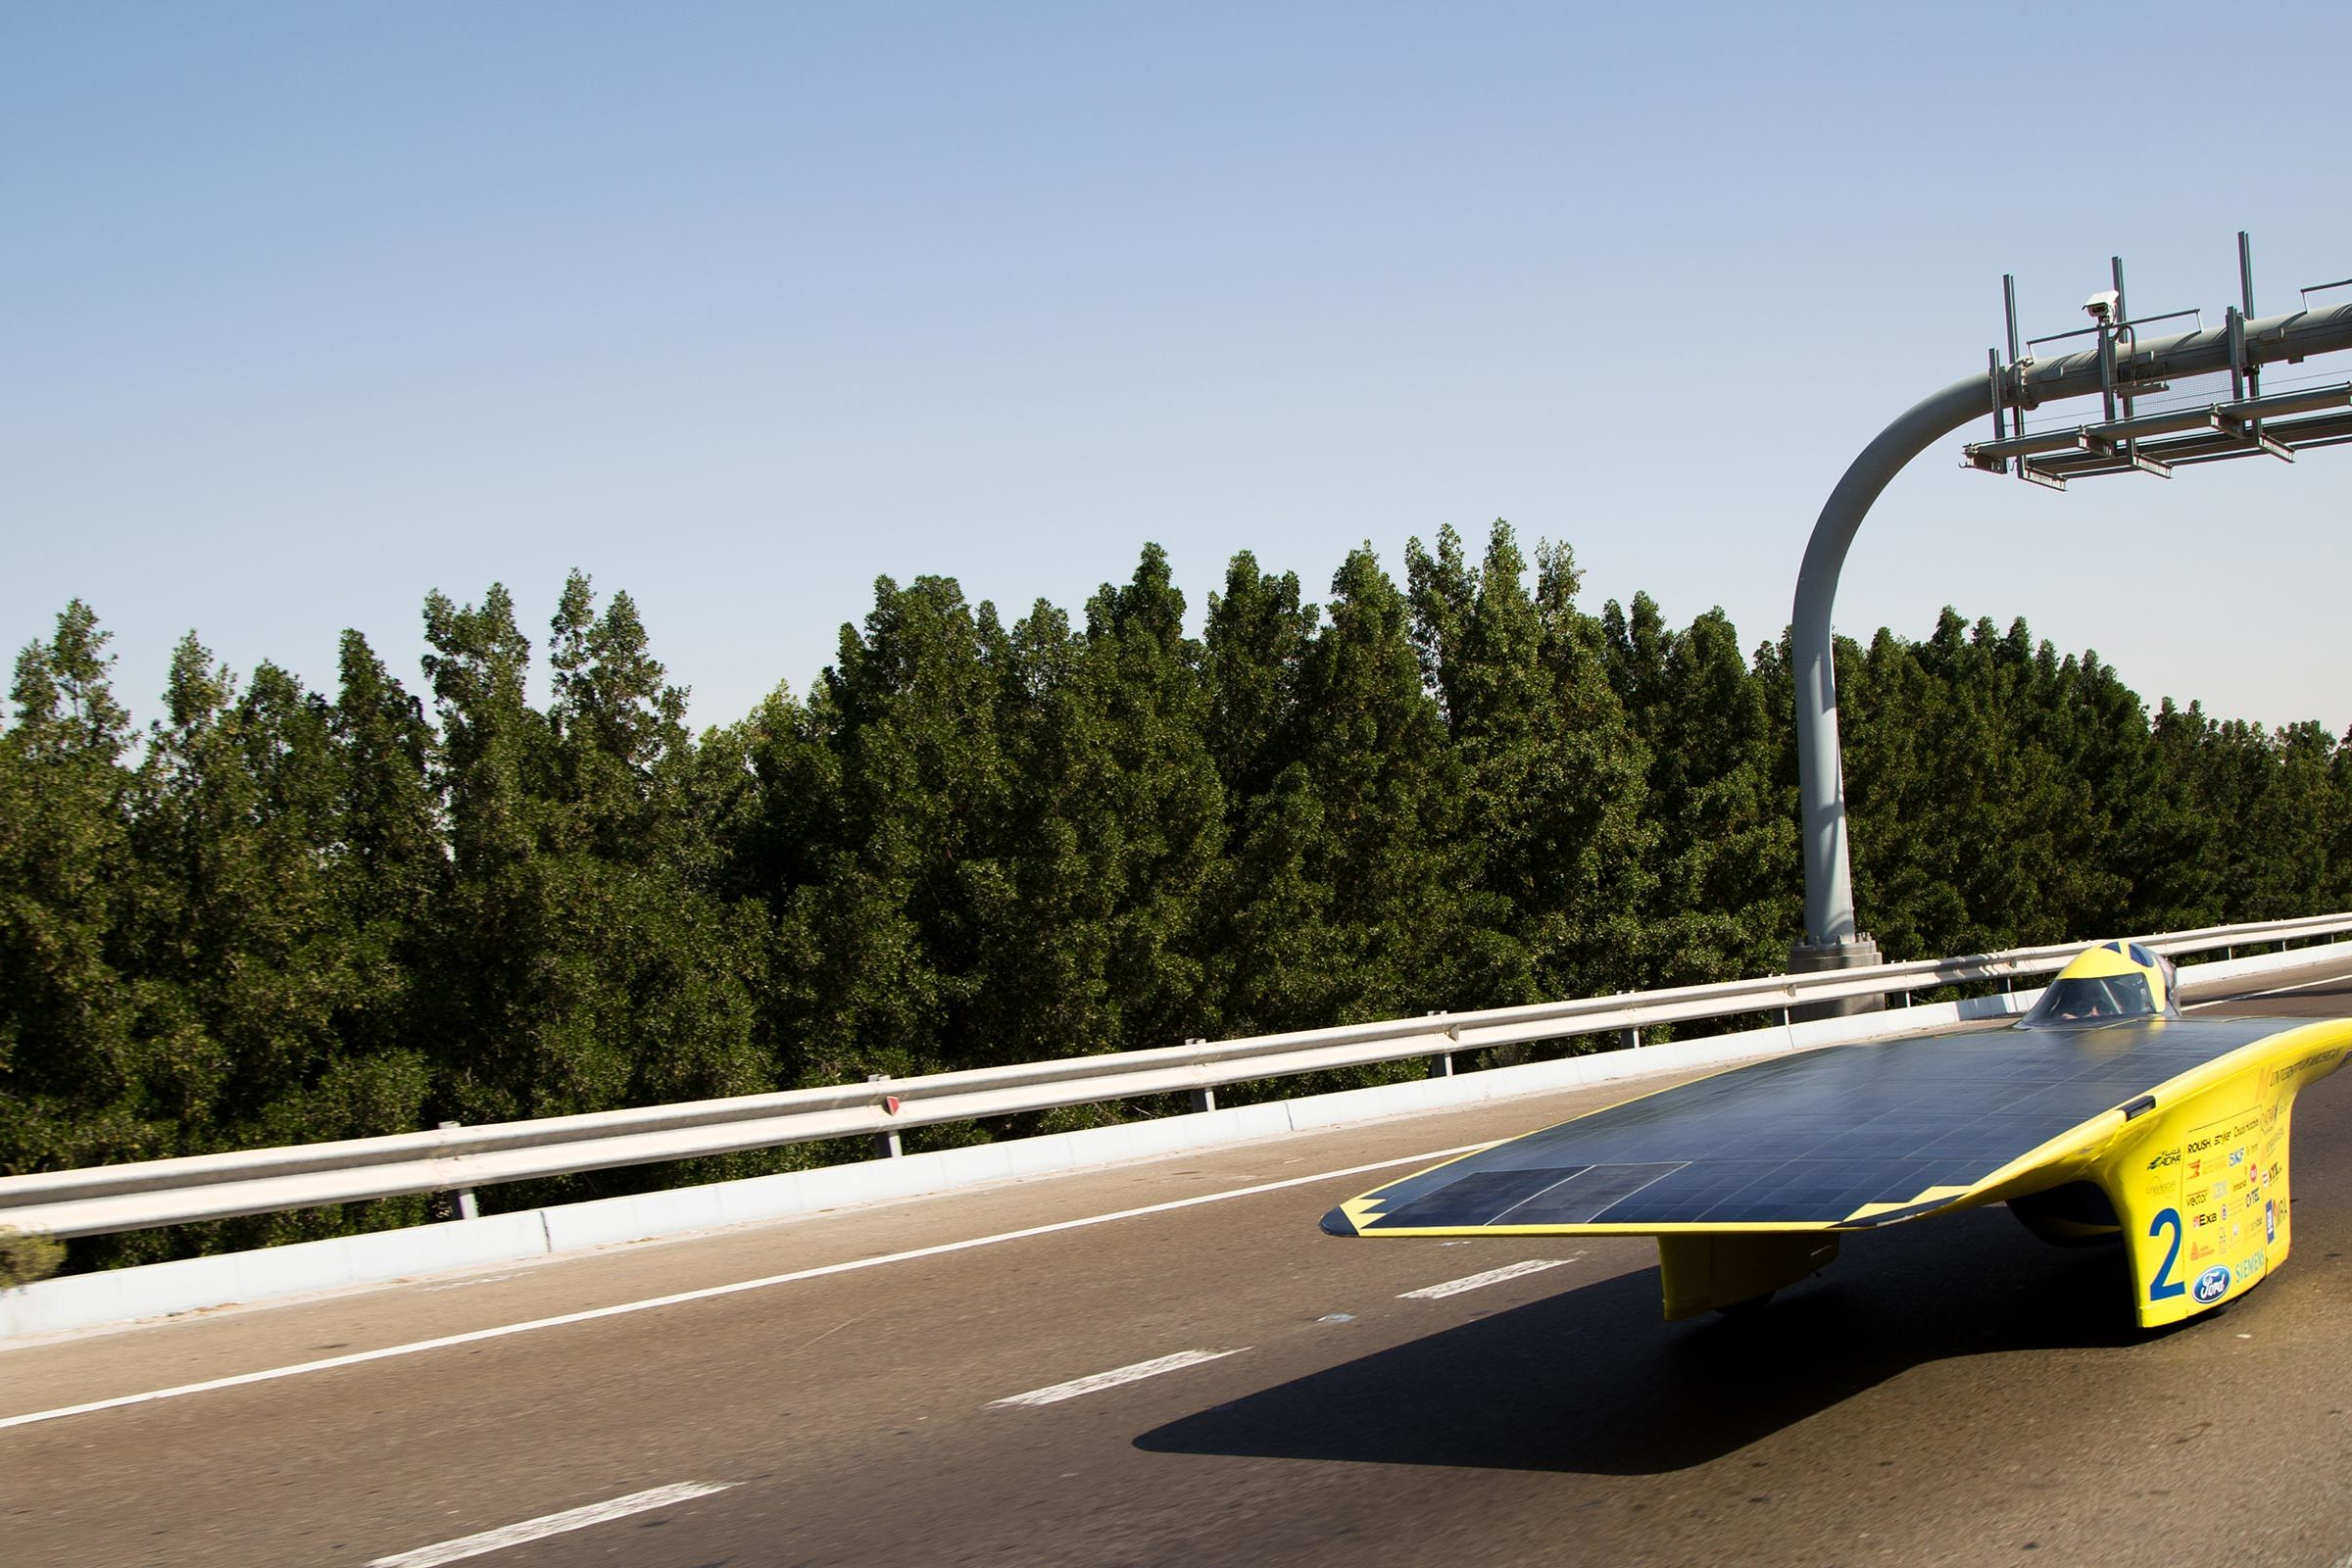 Solar car racing on a road.